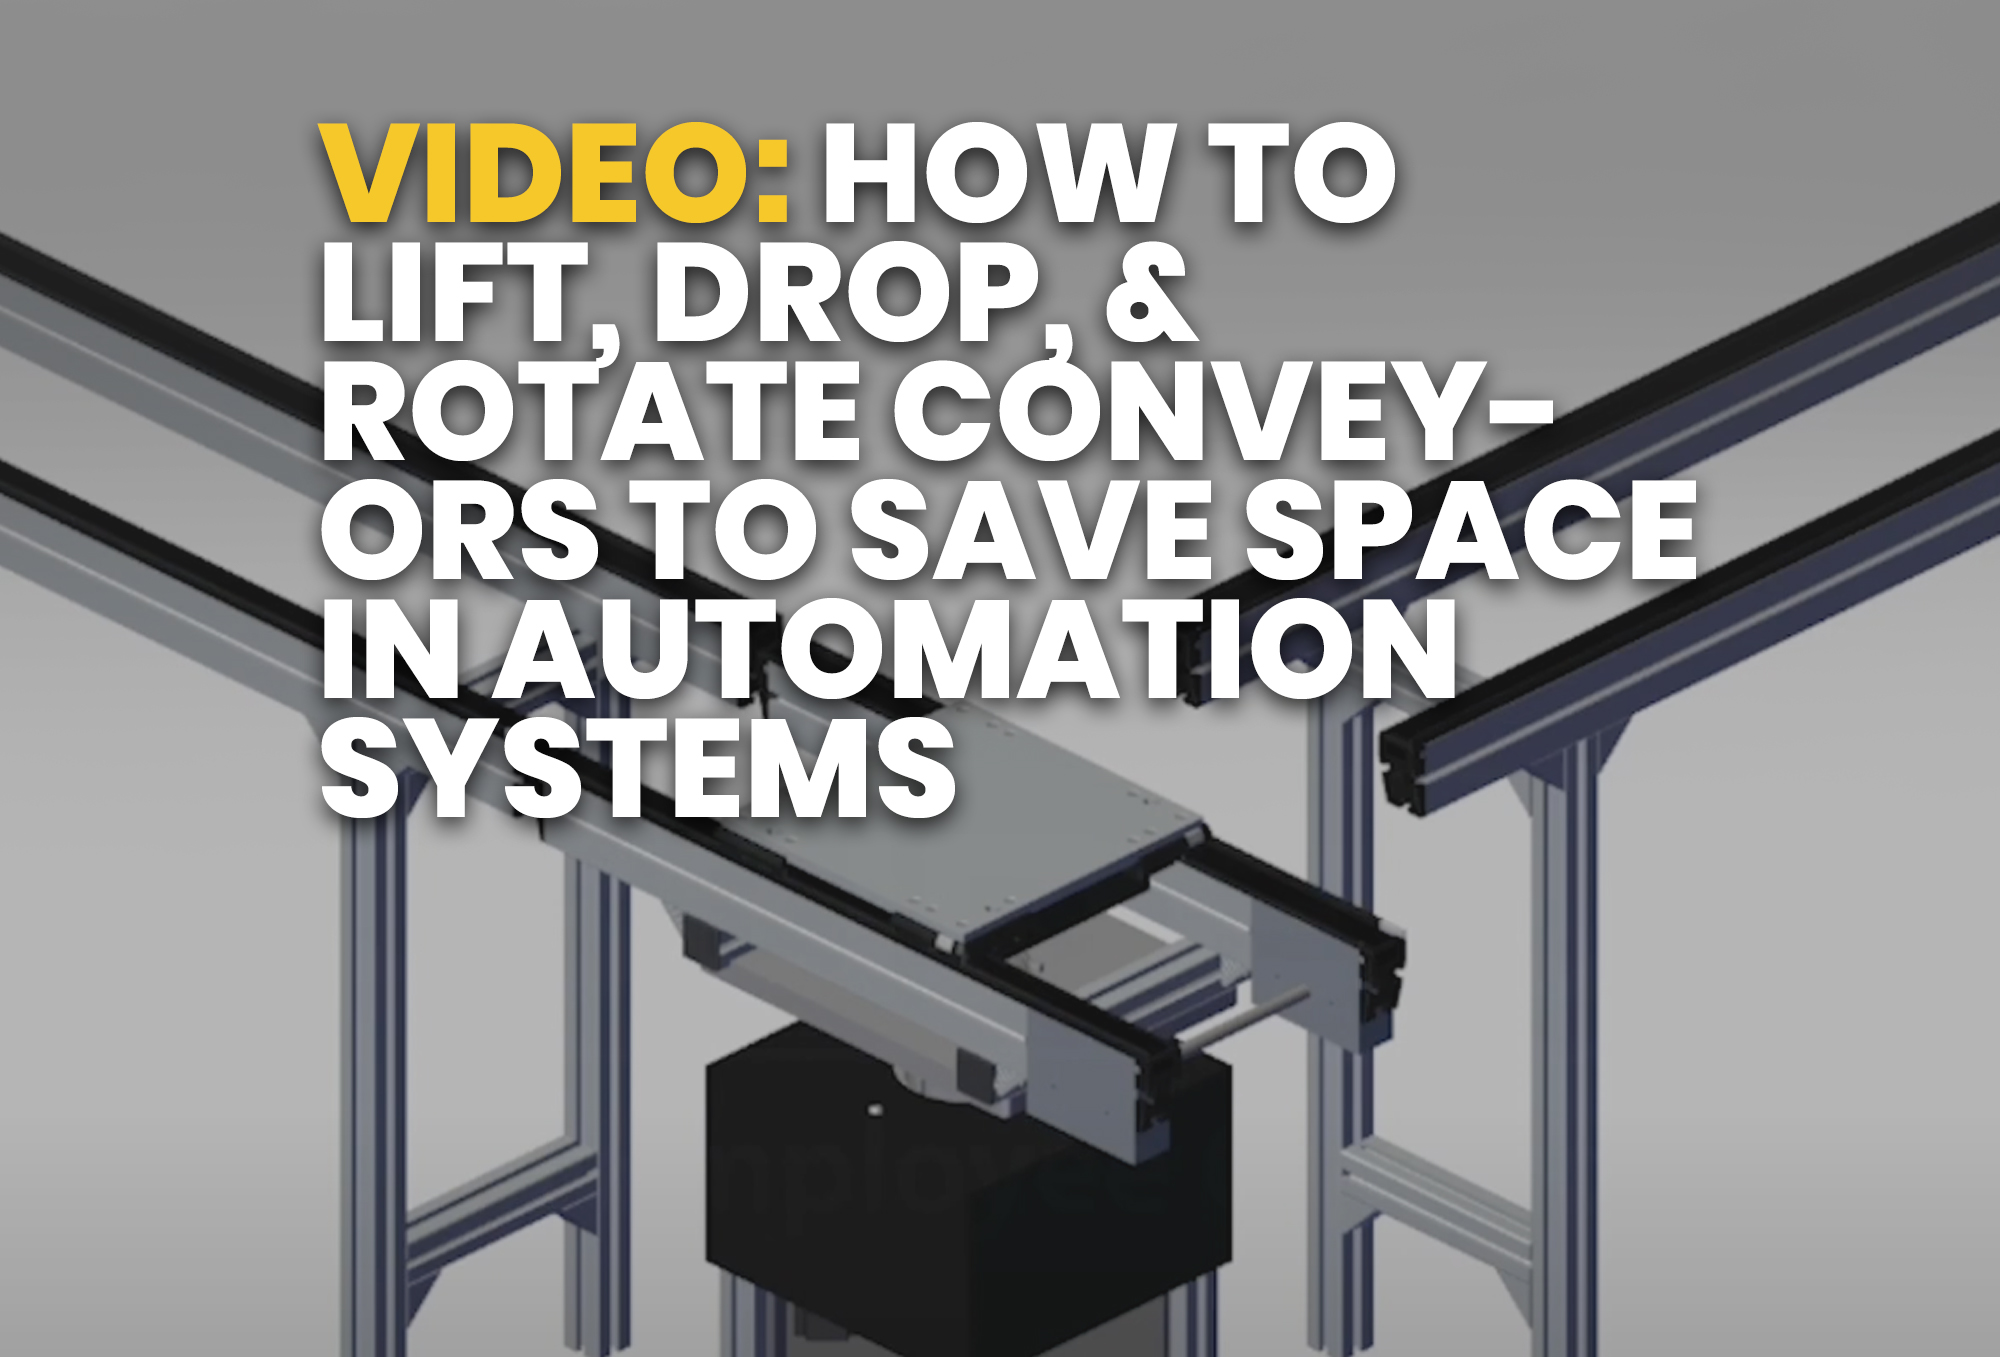 video- How to Lift, Drop, & Rotate Conveyors to Save Space in Automation Systems